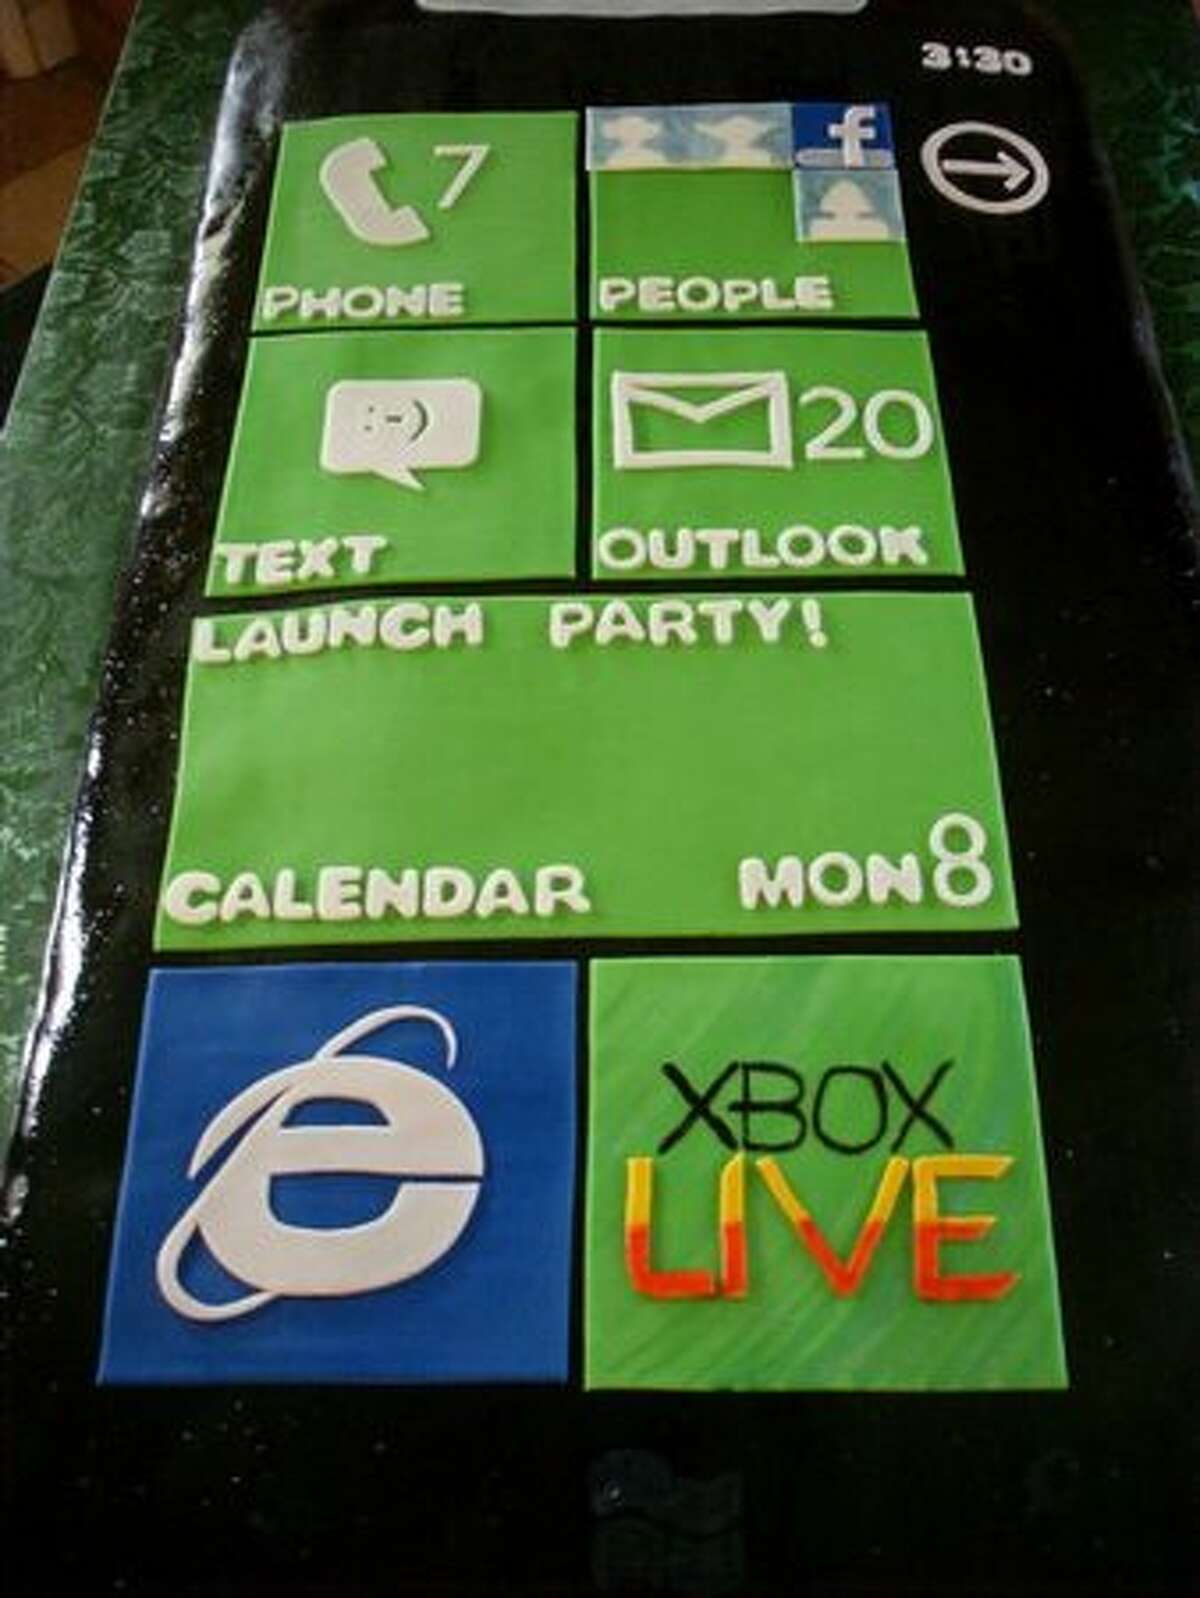 The main Windows Phone 7 cake.